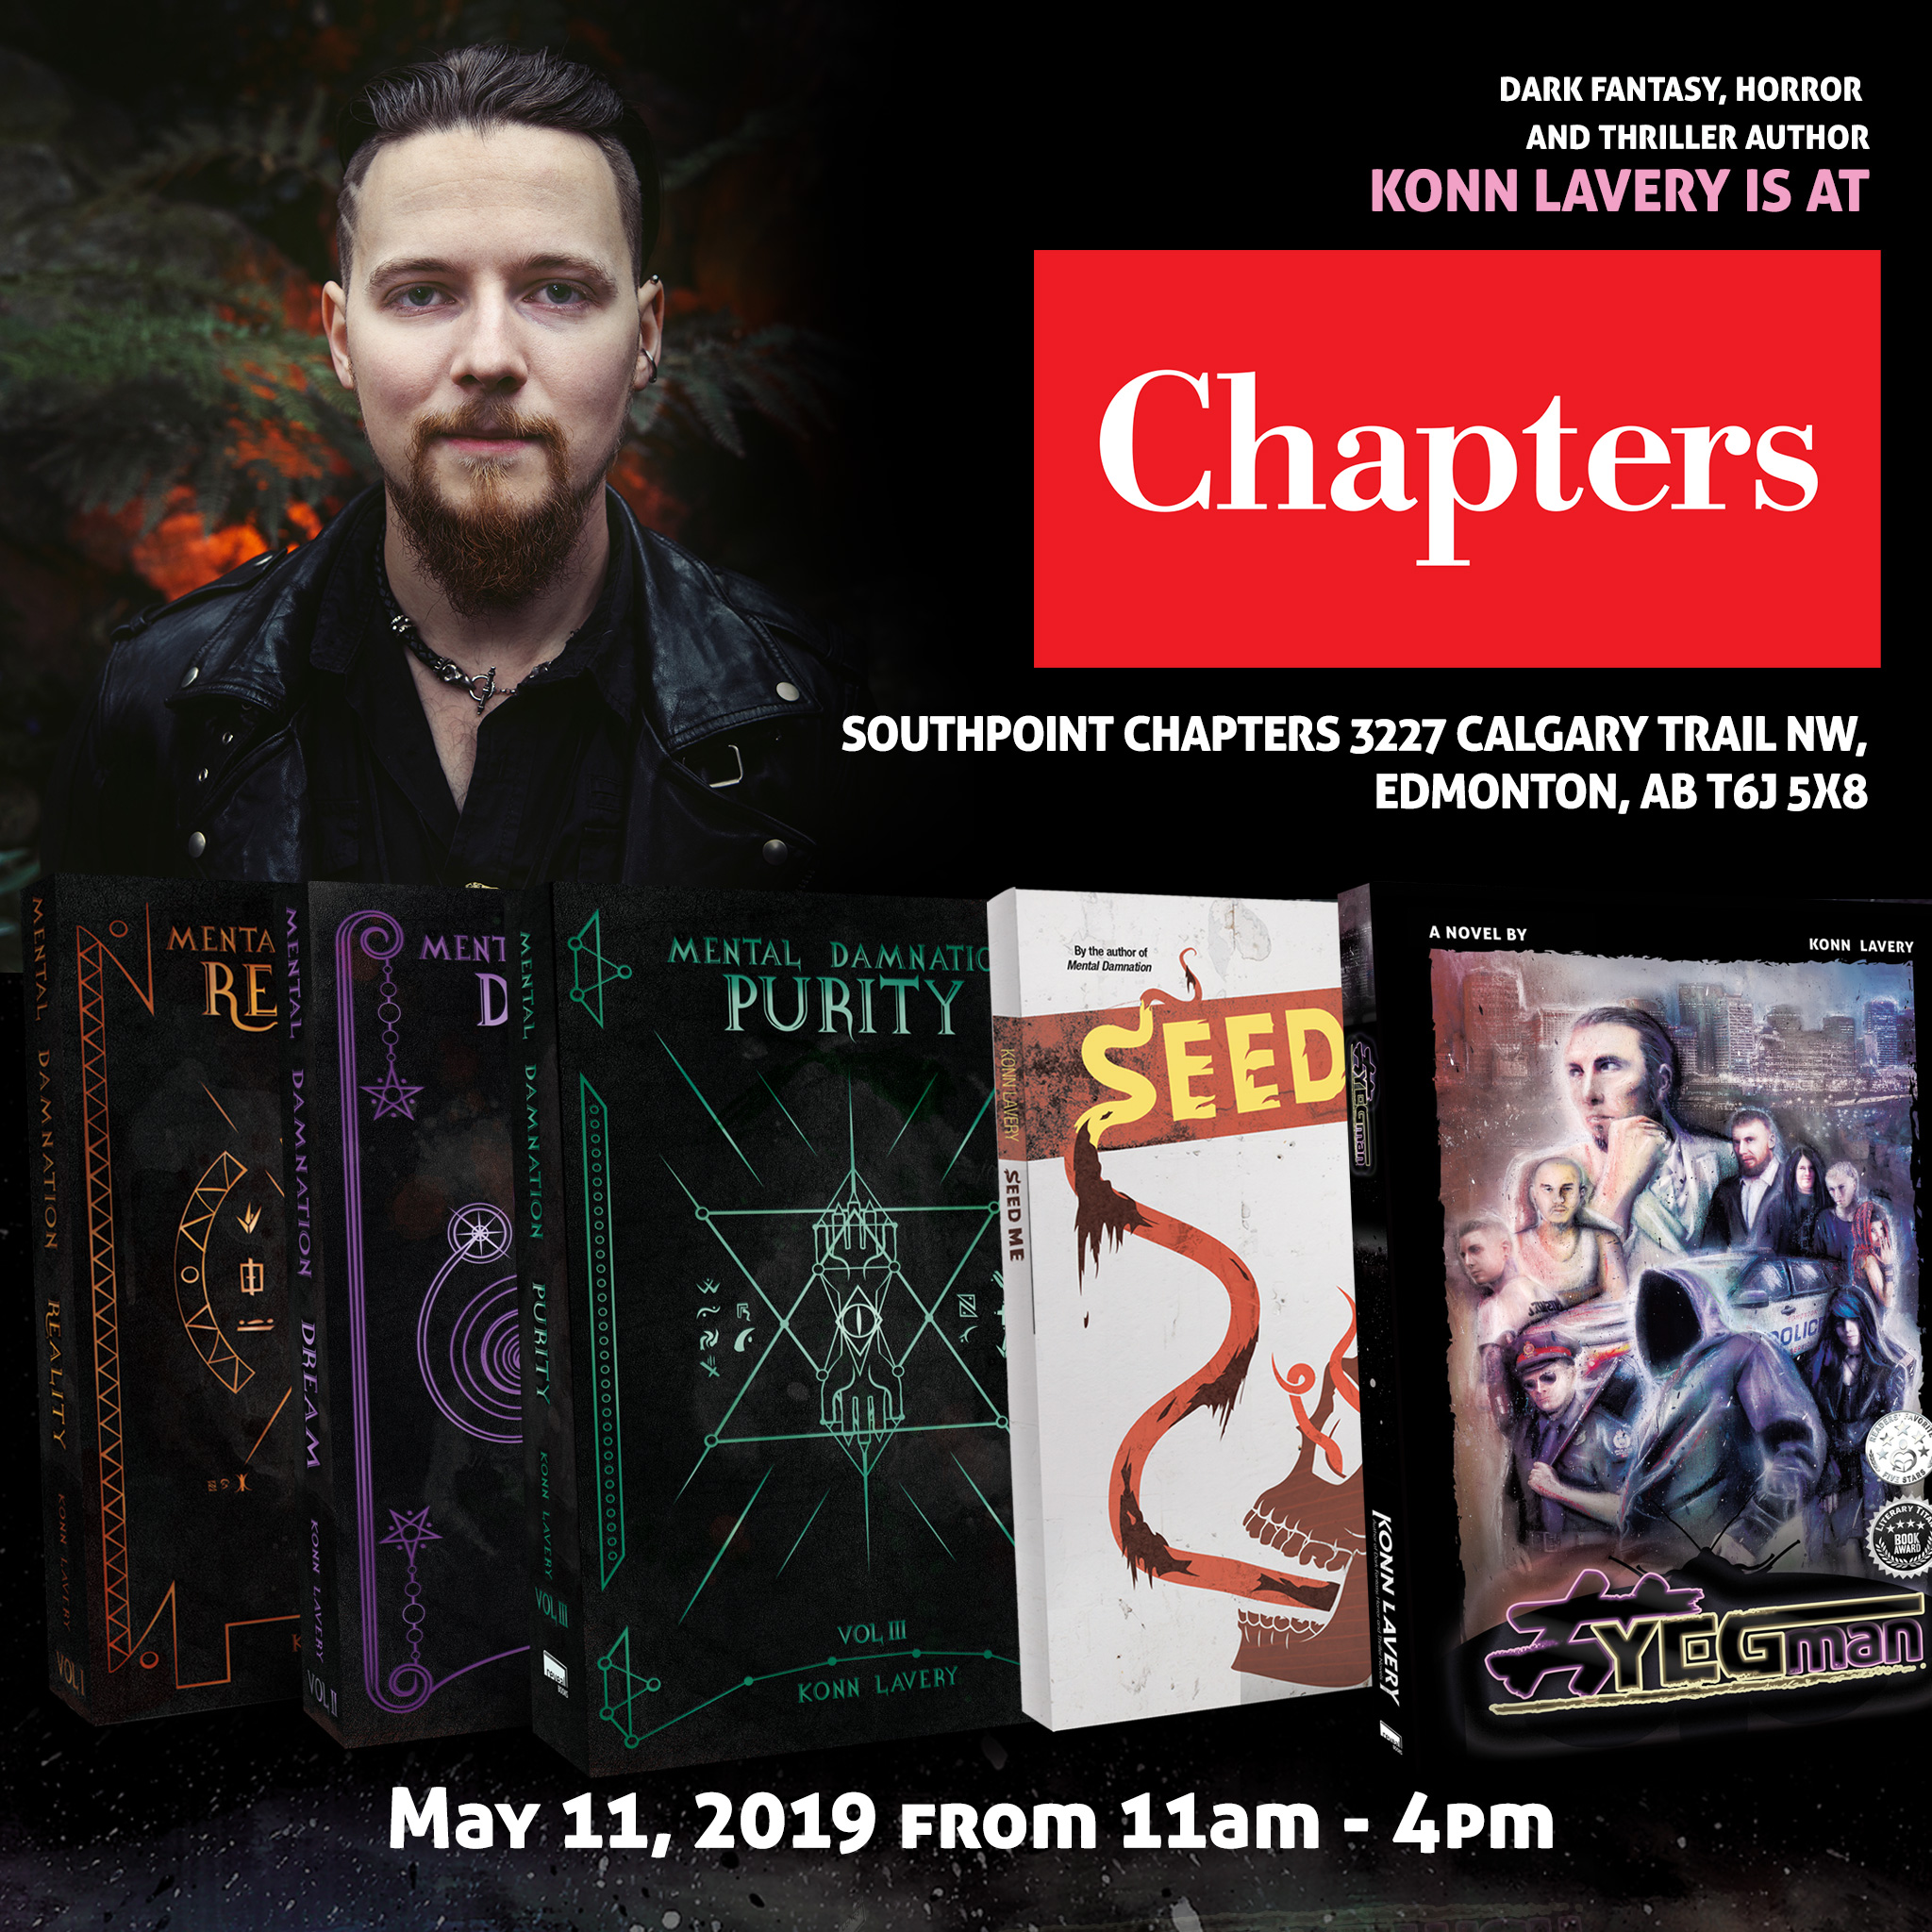 Book Signing at Southpoint Chapters